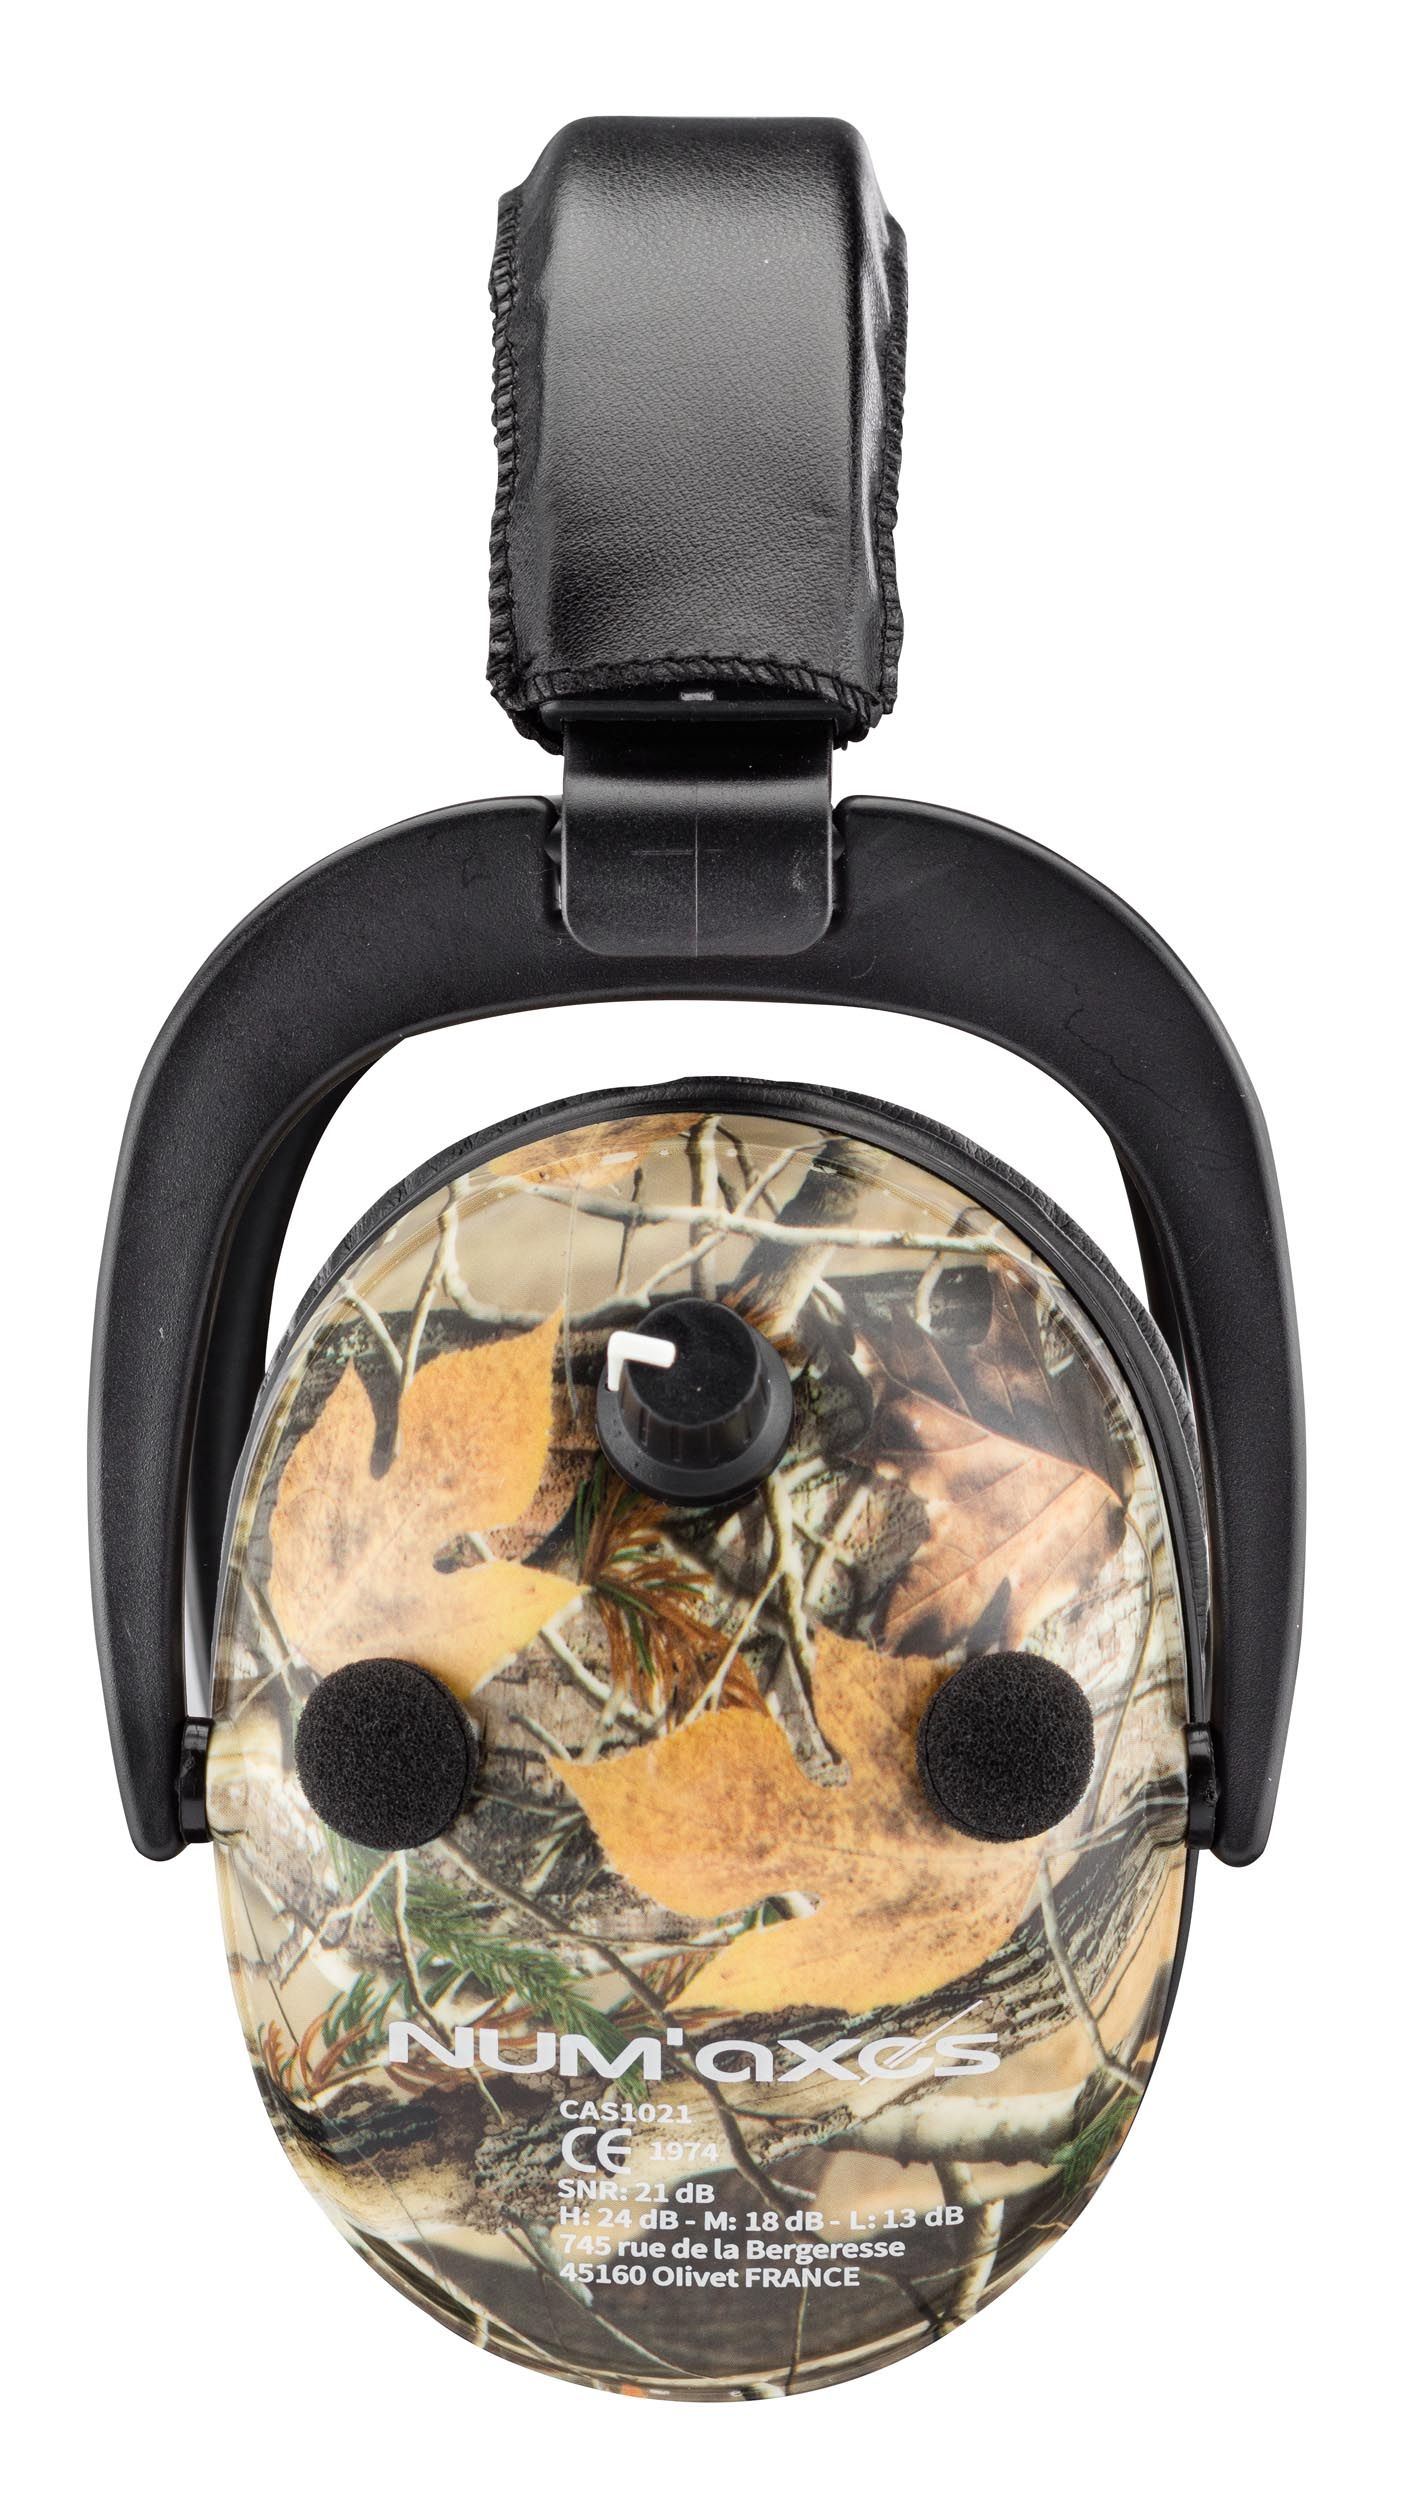 NUM117-3 Spika Hearing Protection Amplified Headphones - NUM117